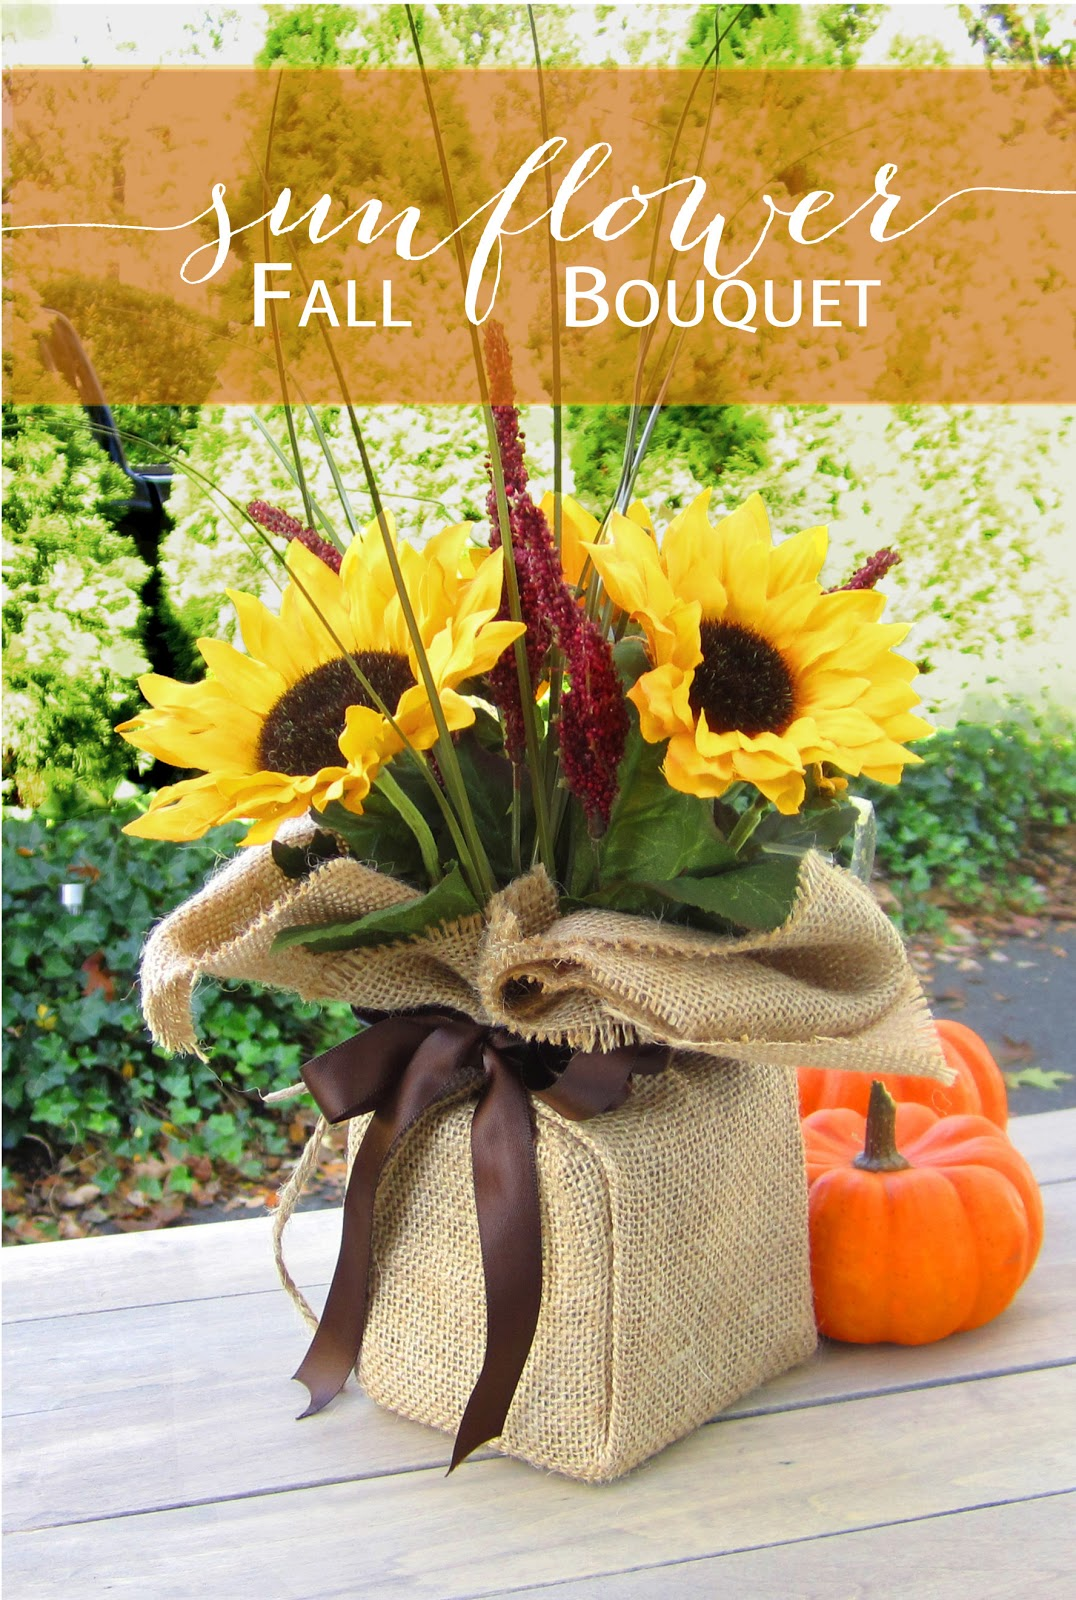 365 Designs Sunflower Autumn Bouquet Wrapped In Burlap